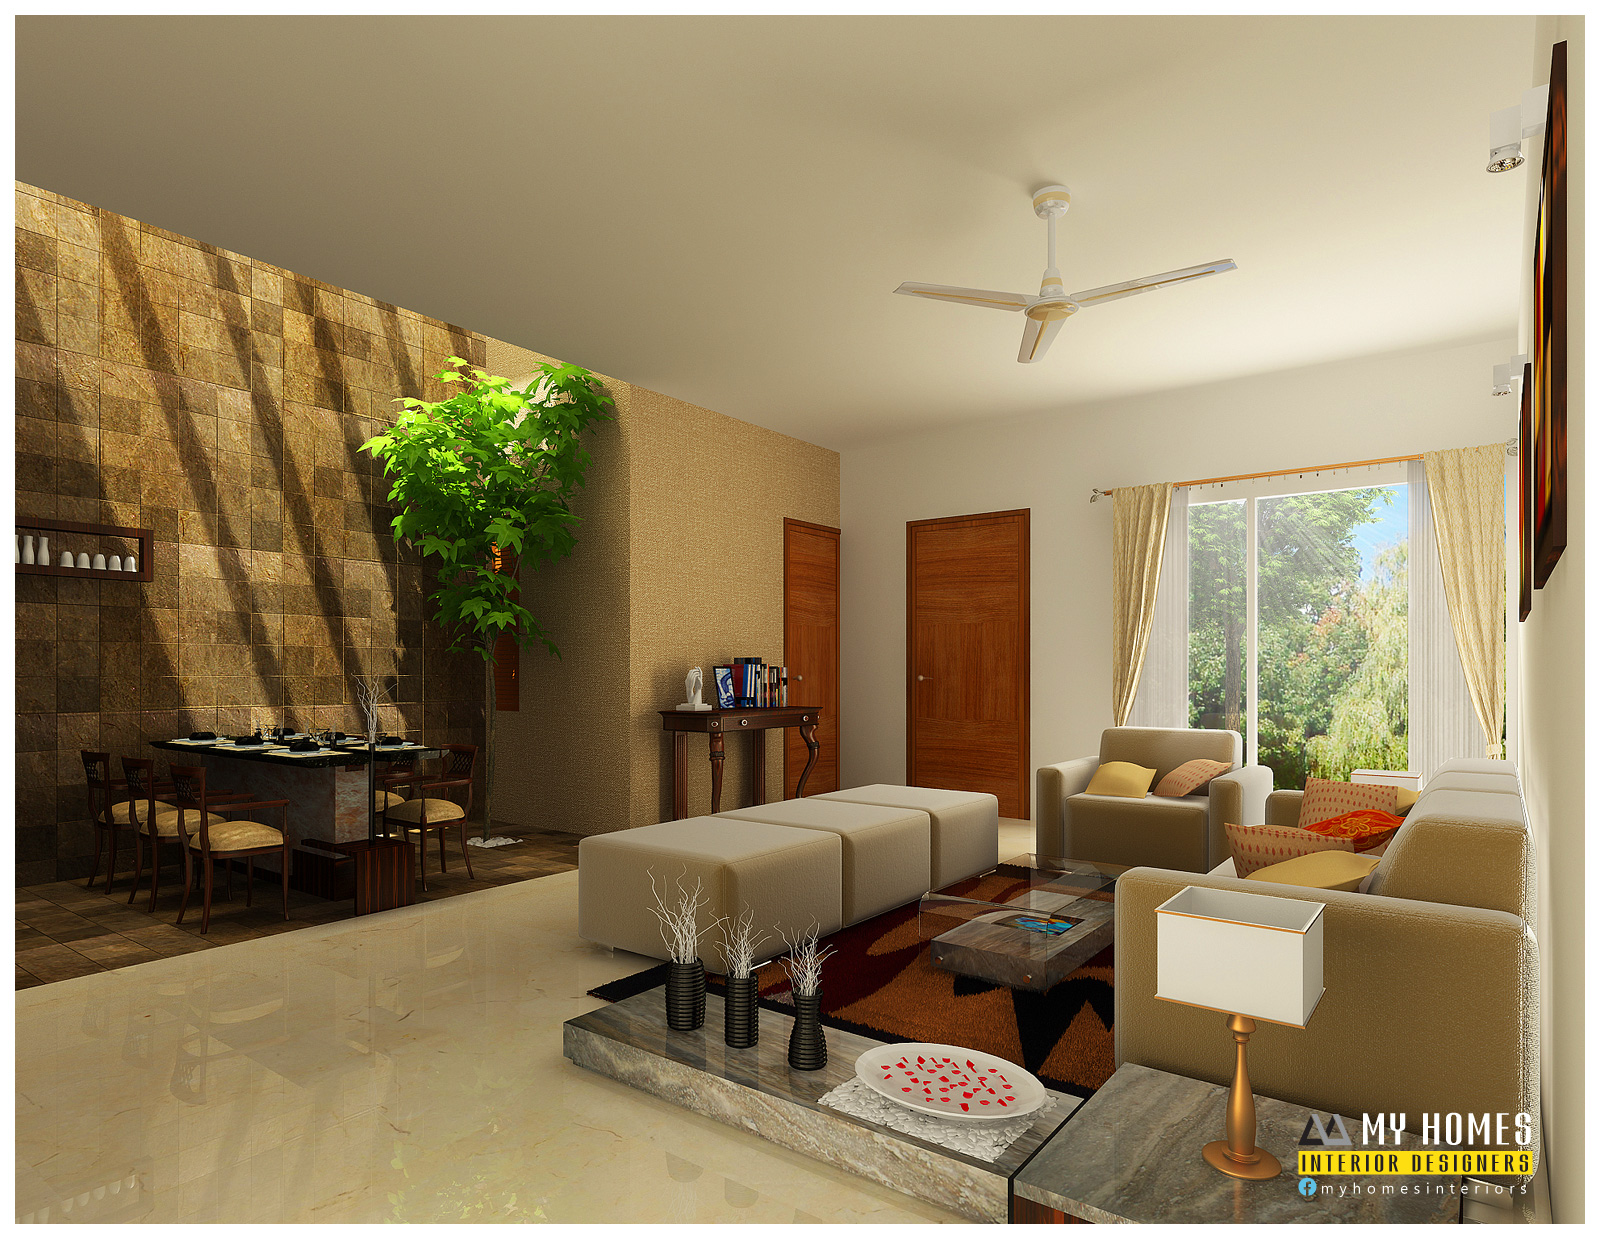 Kerala interior design ideas from designing company thrissur - Home interior designs ...